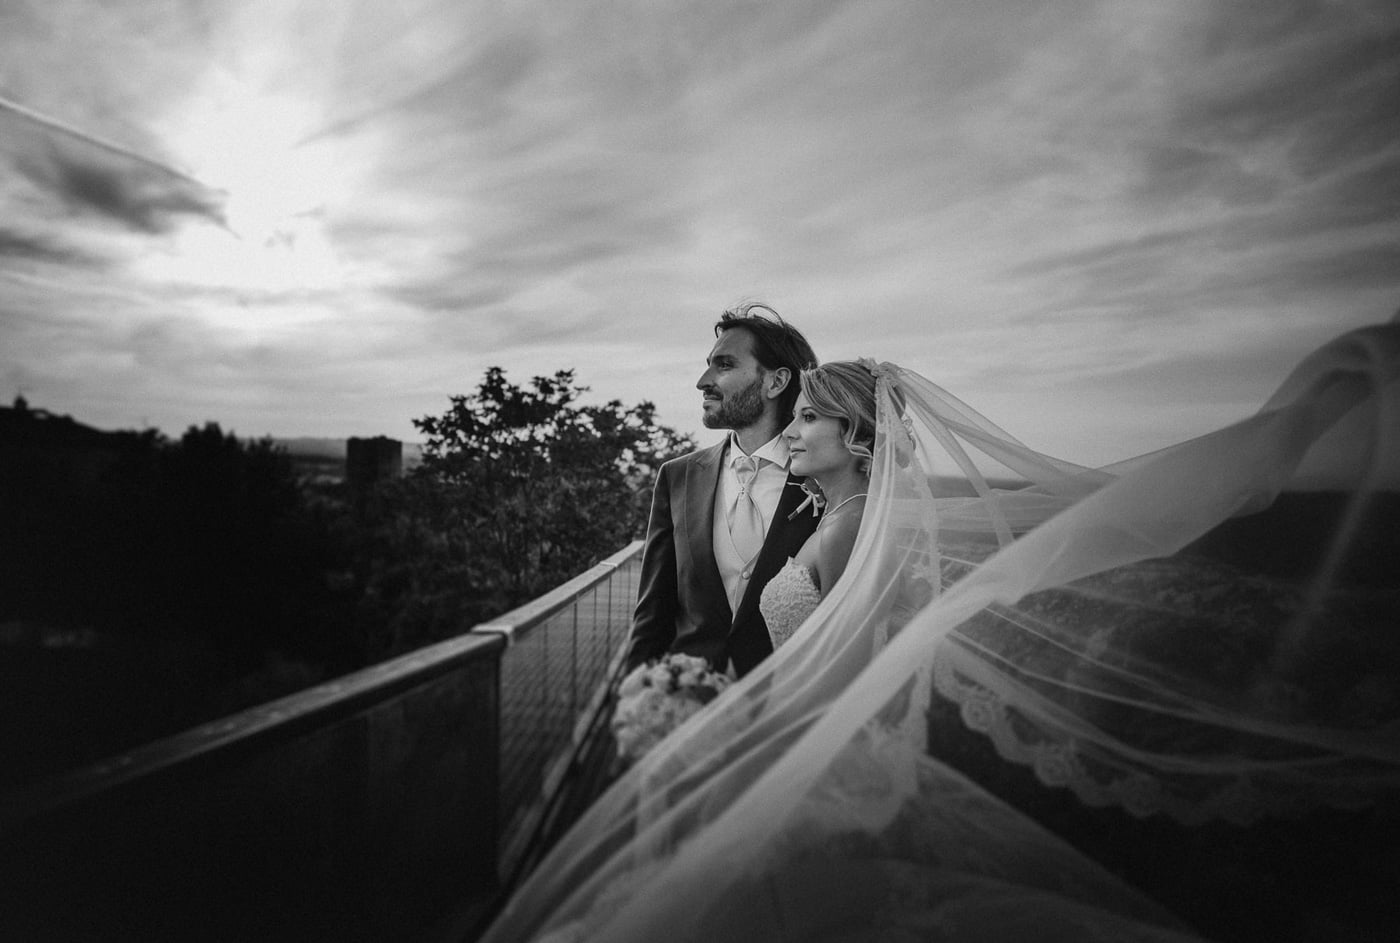 Andrea & Francesca | Wedding at Borgo San Luigi by Federico Pannacci 56